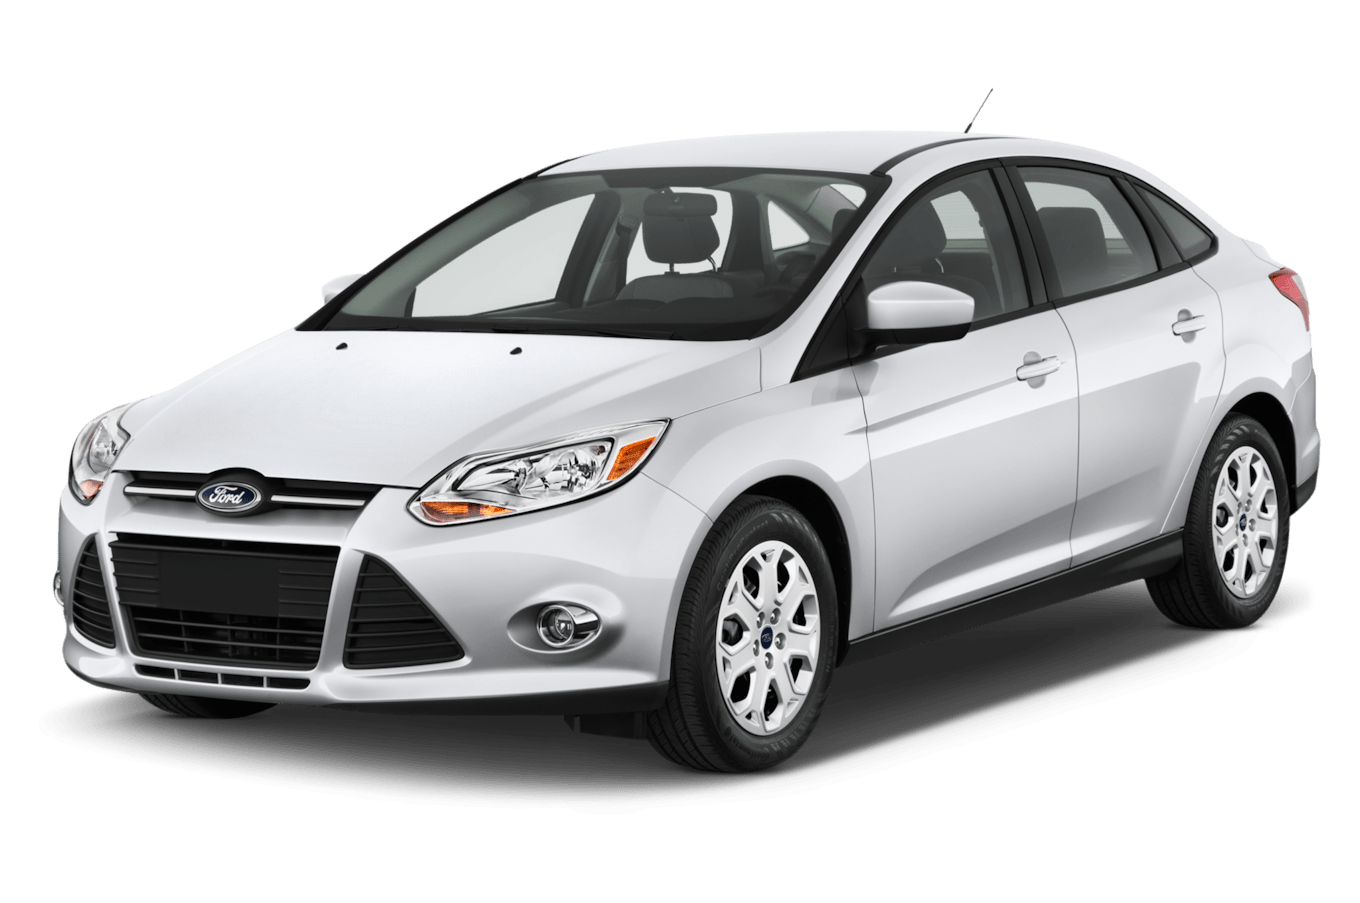 hight resolution of 2012 ford focus reviews research focus prices u0026 specs motortrend 2012 ford focus interior 58